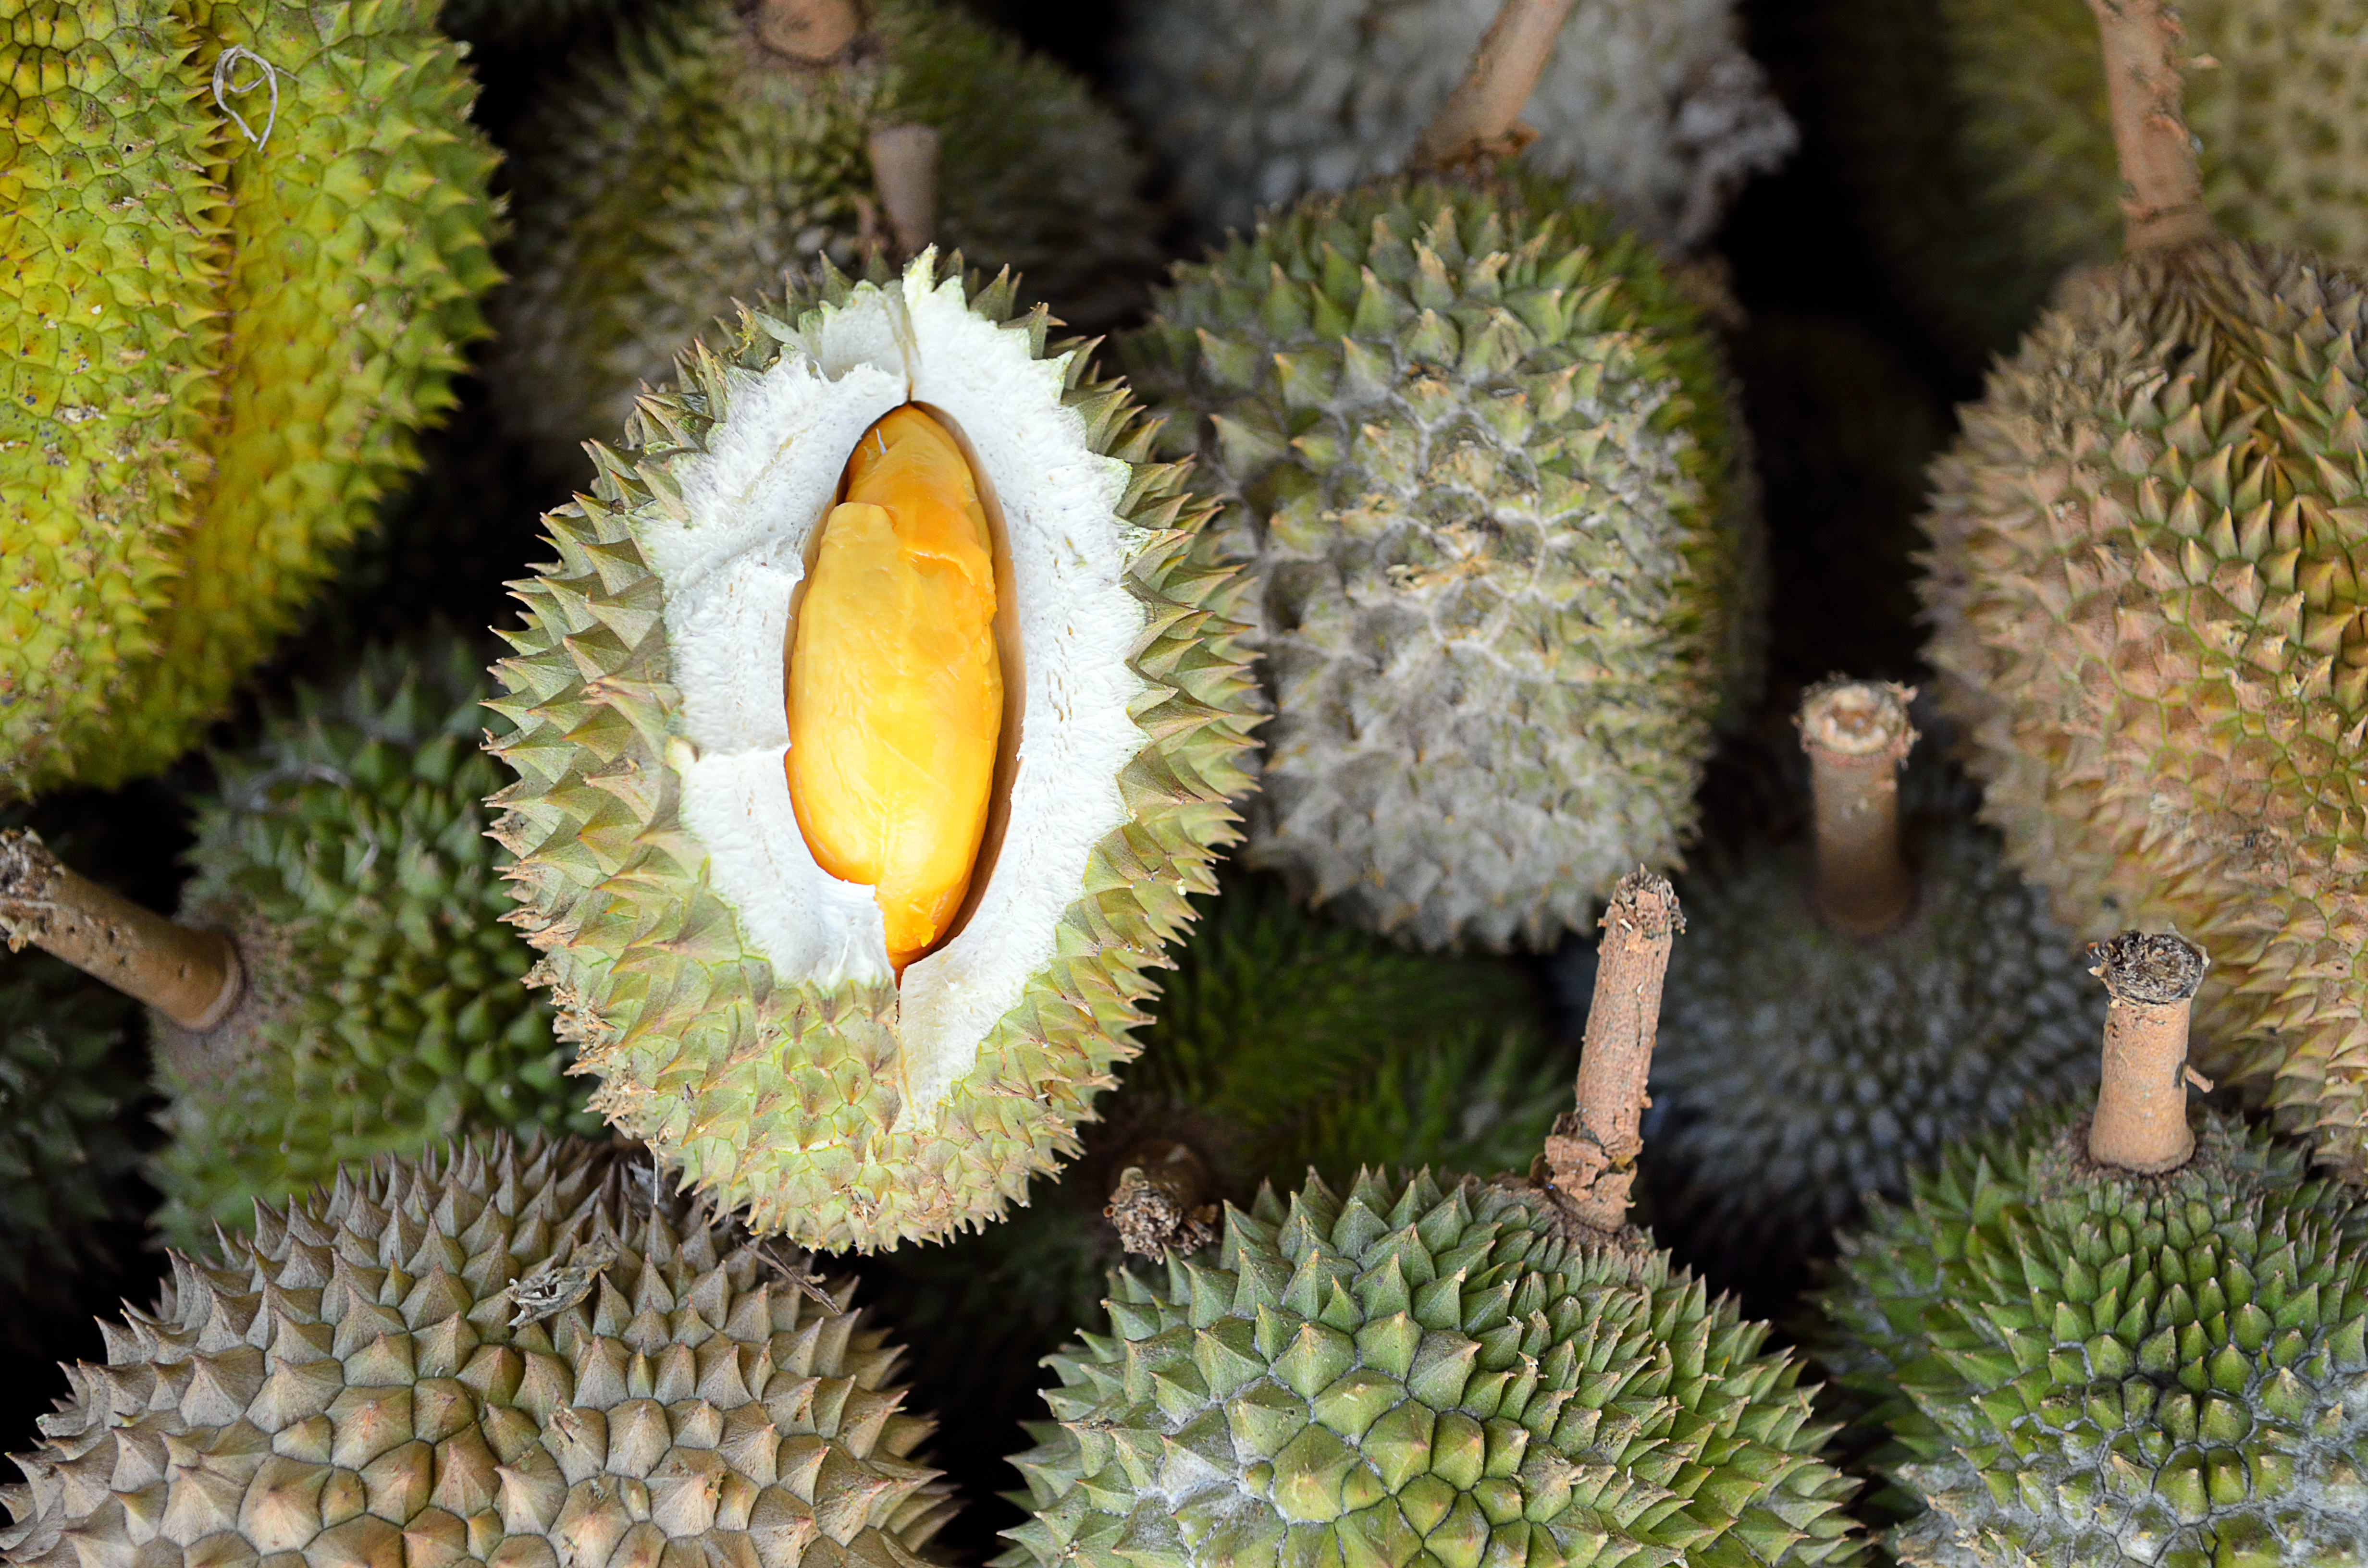 Group of durian in the market...